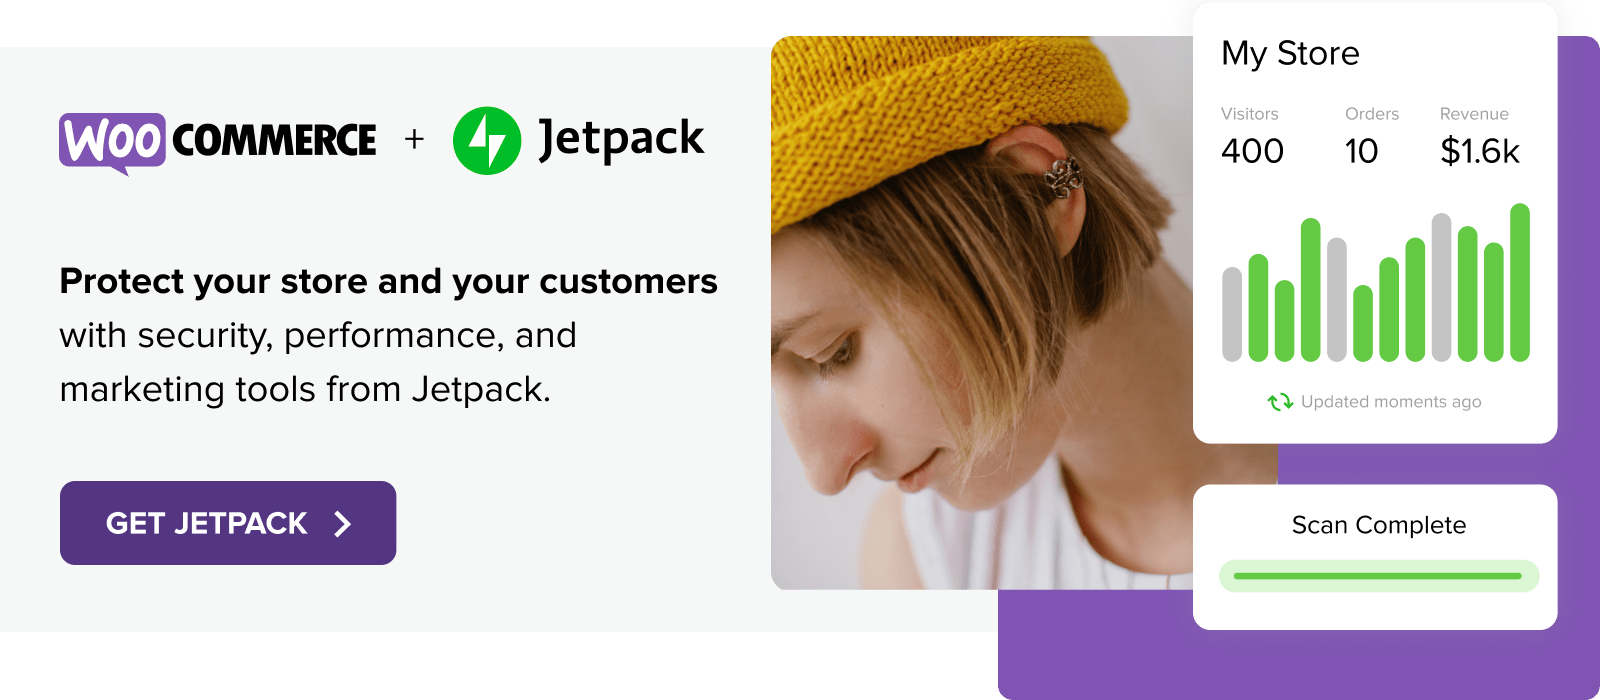 Protect your store and your customers with Jetpack